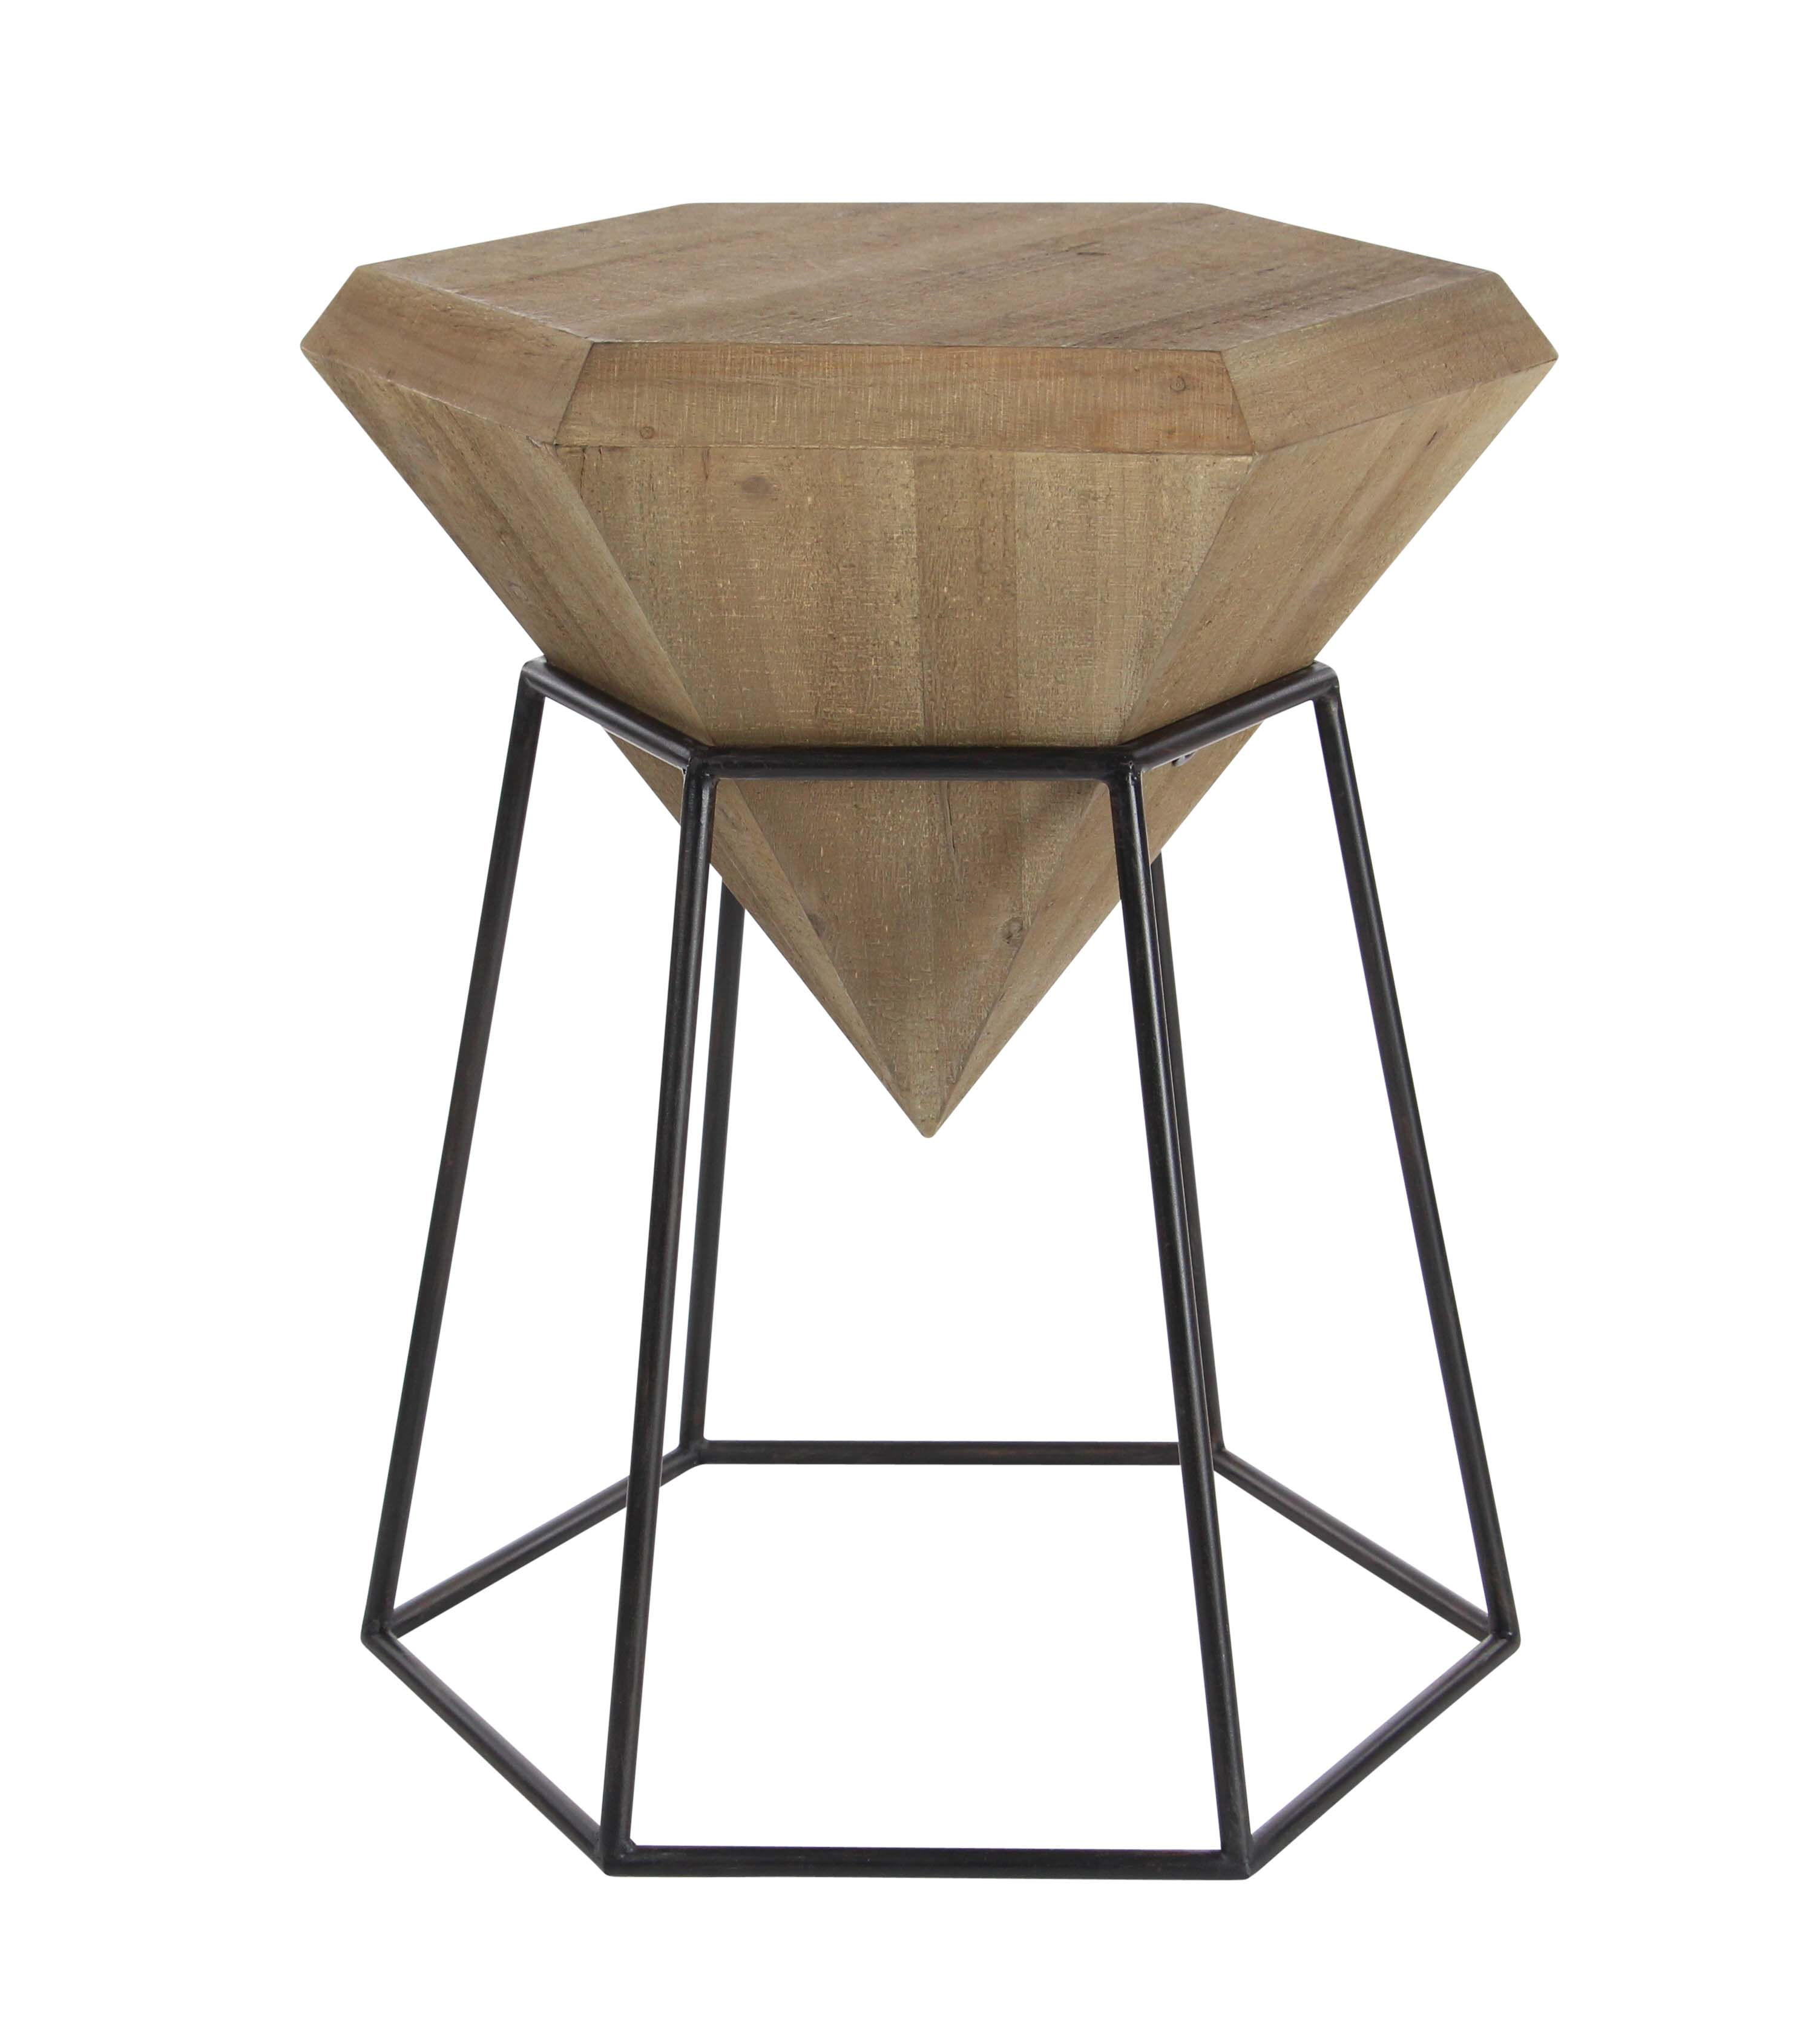 Decmode Modern 25 X 20 Inch Iron Framed Wooden Diamond Accent Table, Brown by DecMode